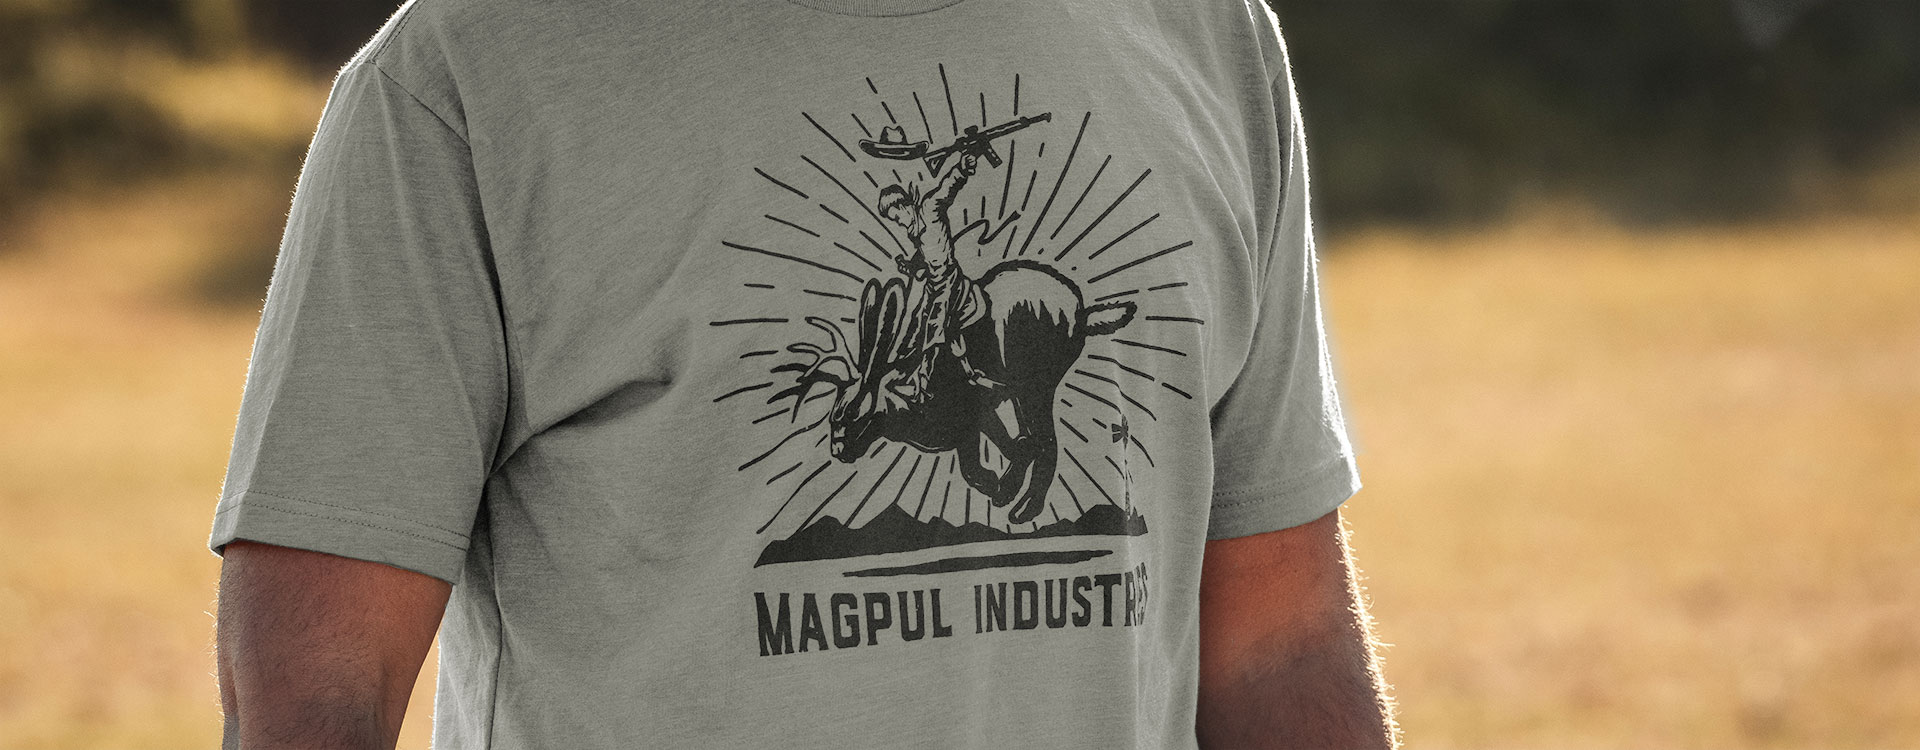 Stone Gray Magpul Jackalope Rodeo CVC T-Shirt worn by an unidentifiable man with a blurred outdoor background